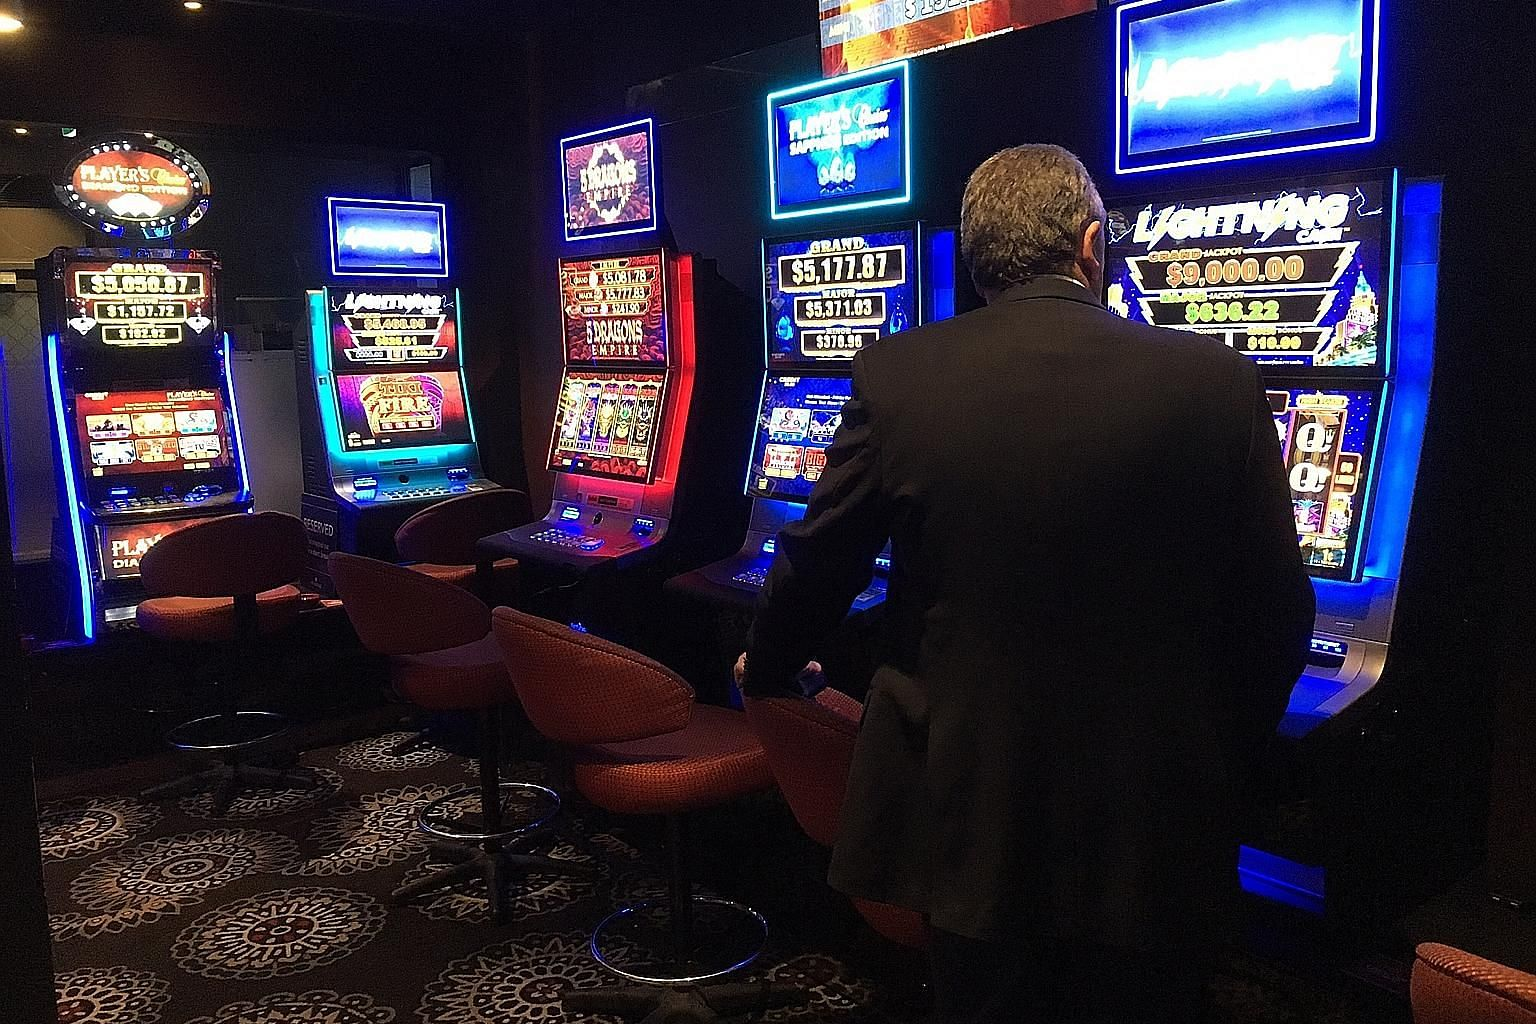 Of the 200,000 slot machines, some 93,000 are in the state of New South Wales. About 500,000 Australians are said to be problem gamblers or at risk of developing a problem.